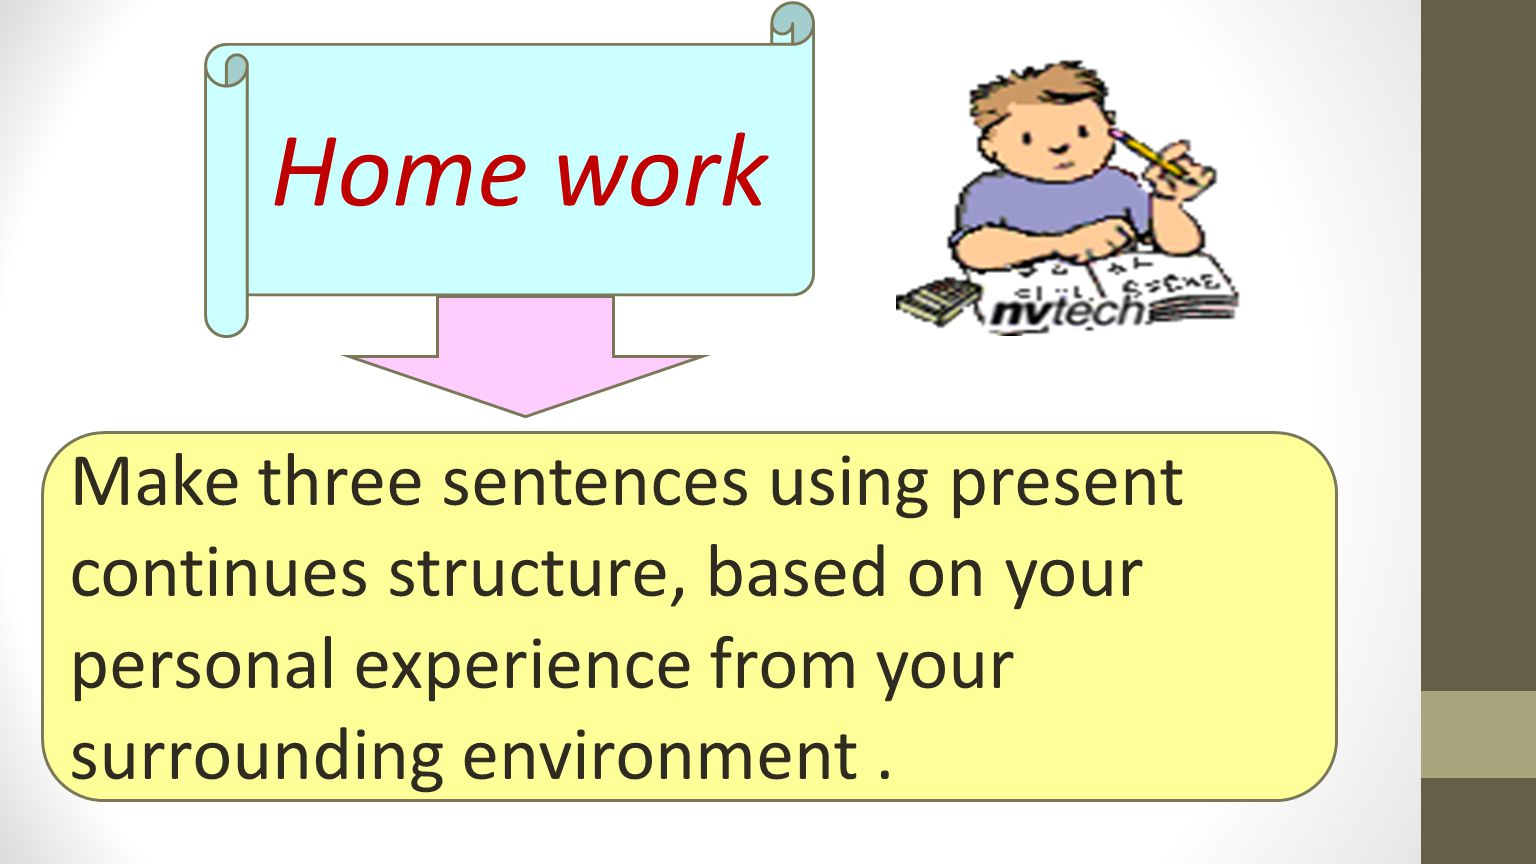 Home work Make three sentences using present continues structure, based on your personal experience from your surrounding environment.